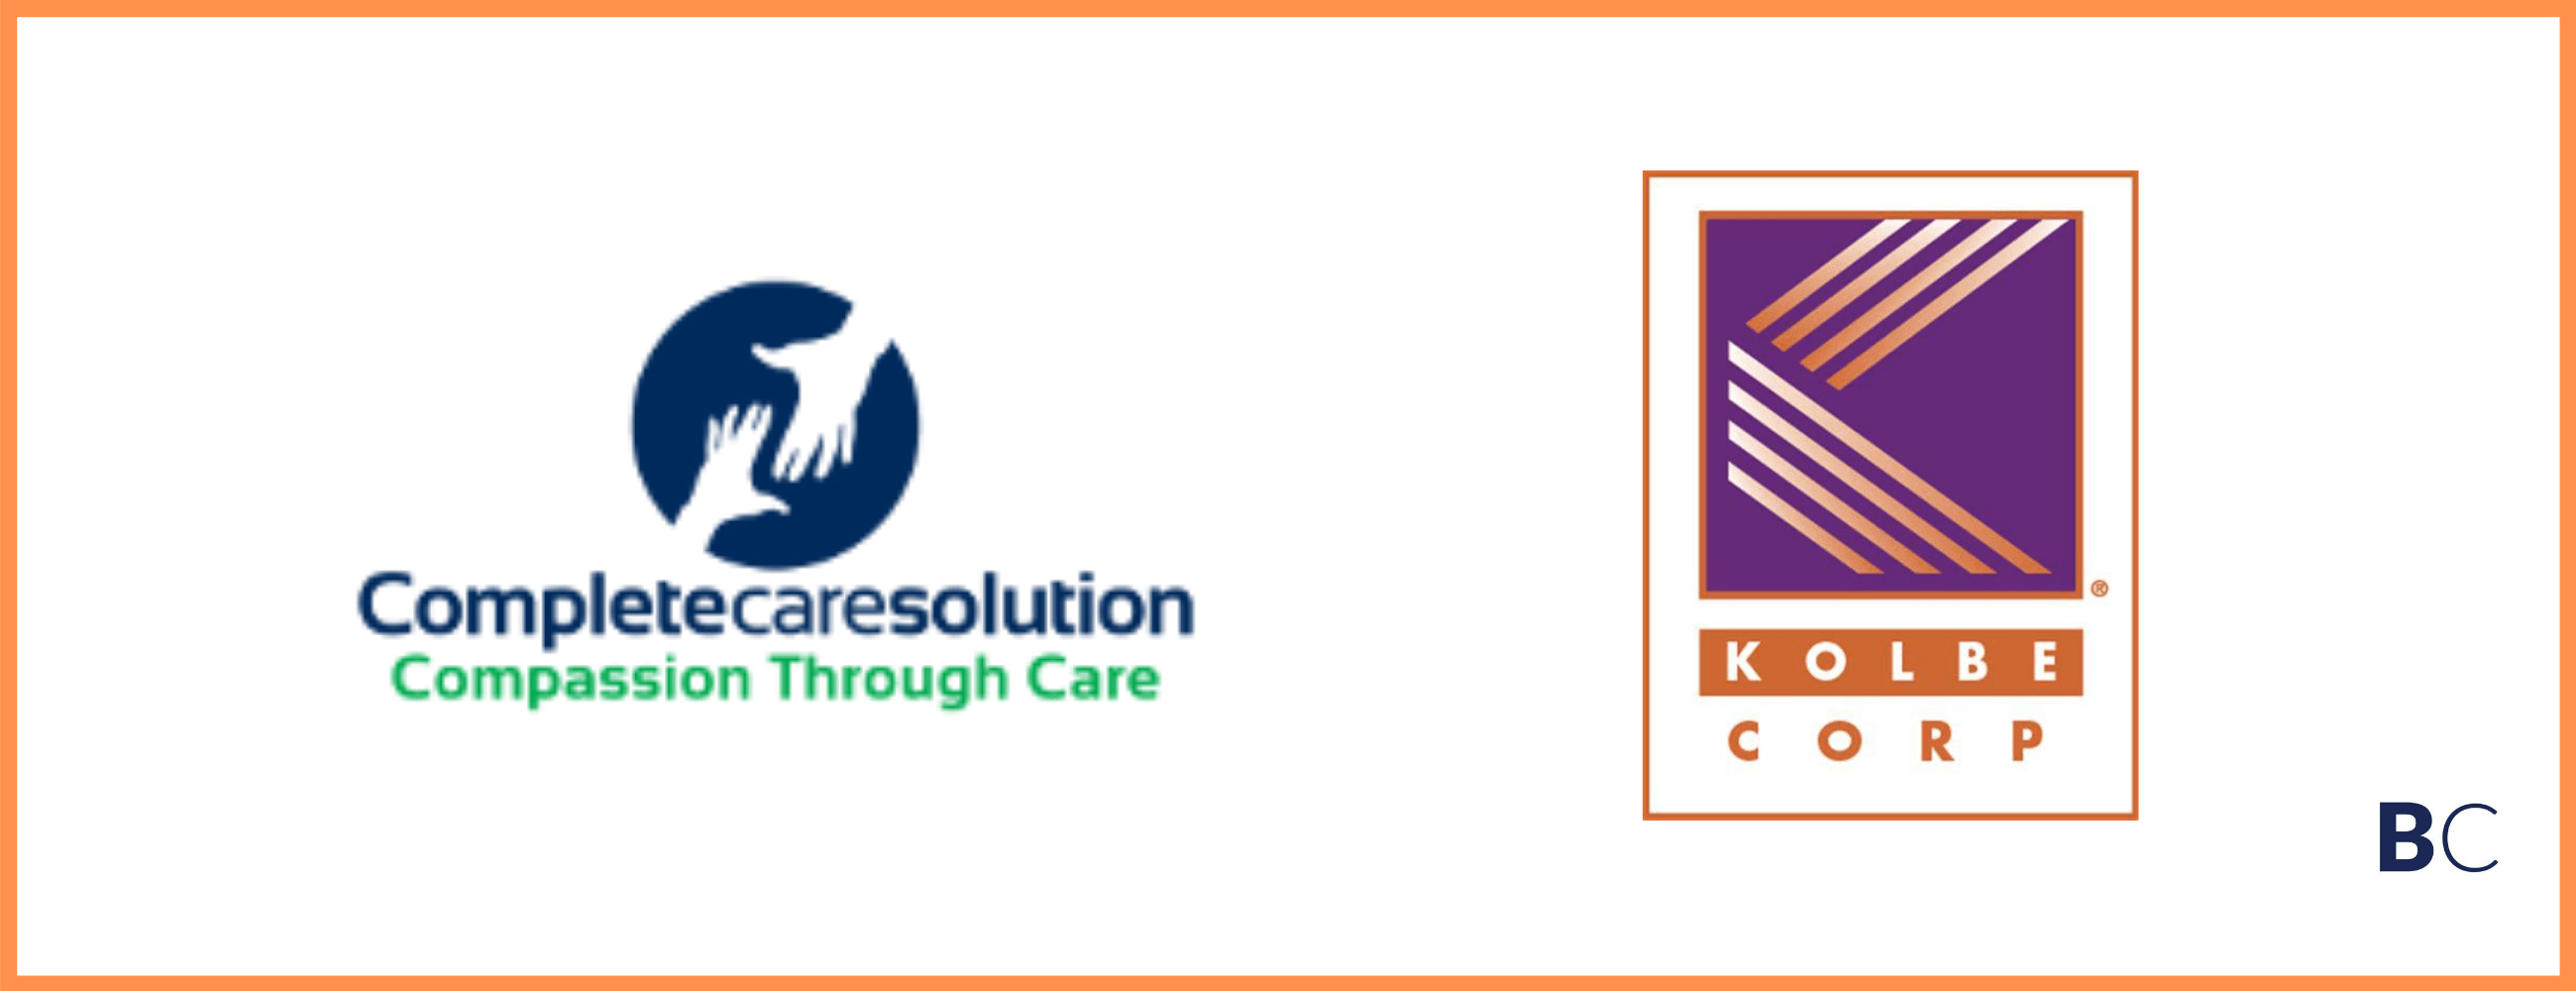 Complete Care Solution Kolbe case study